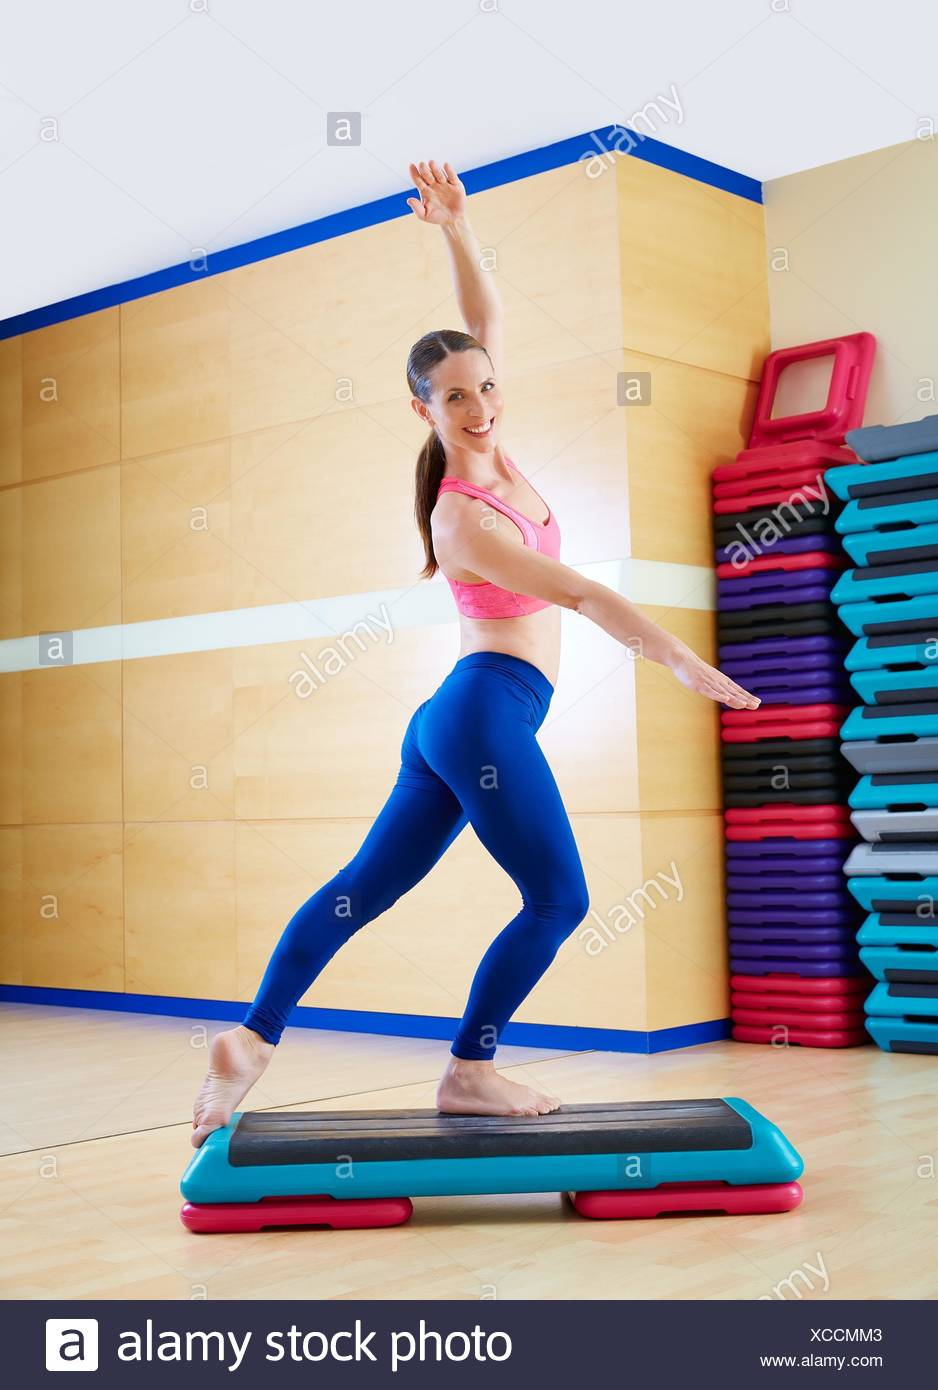 Step Workout: Aerobic Step Stock Photos & Aerobic Step Stock Images